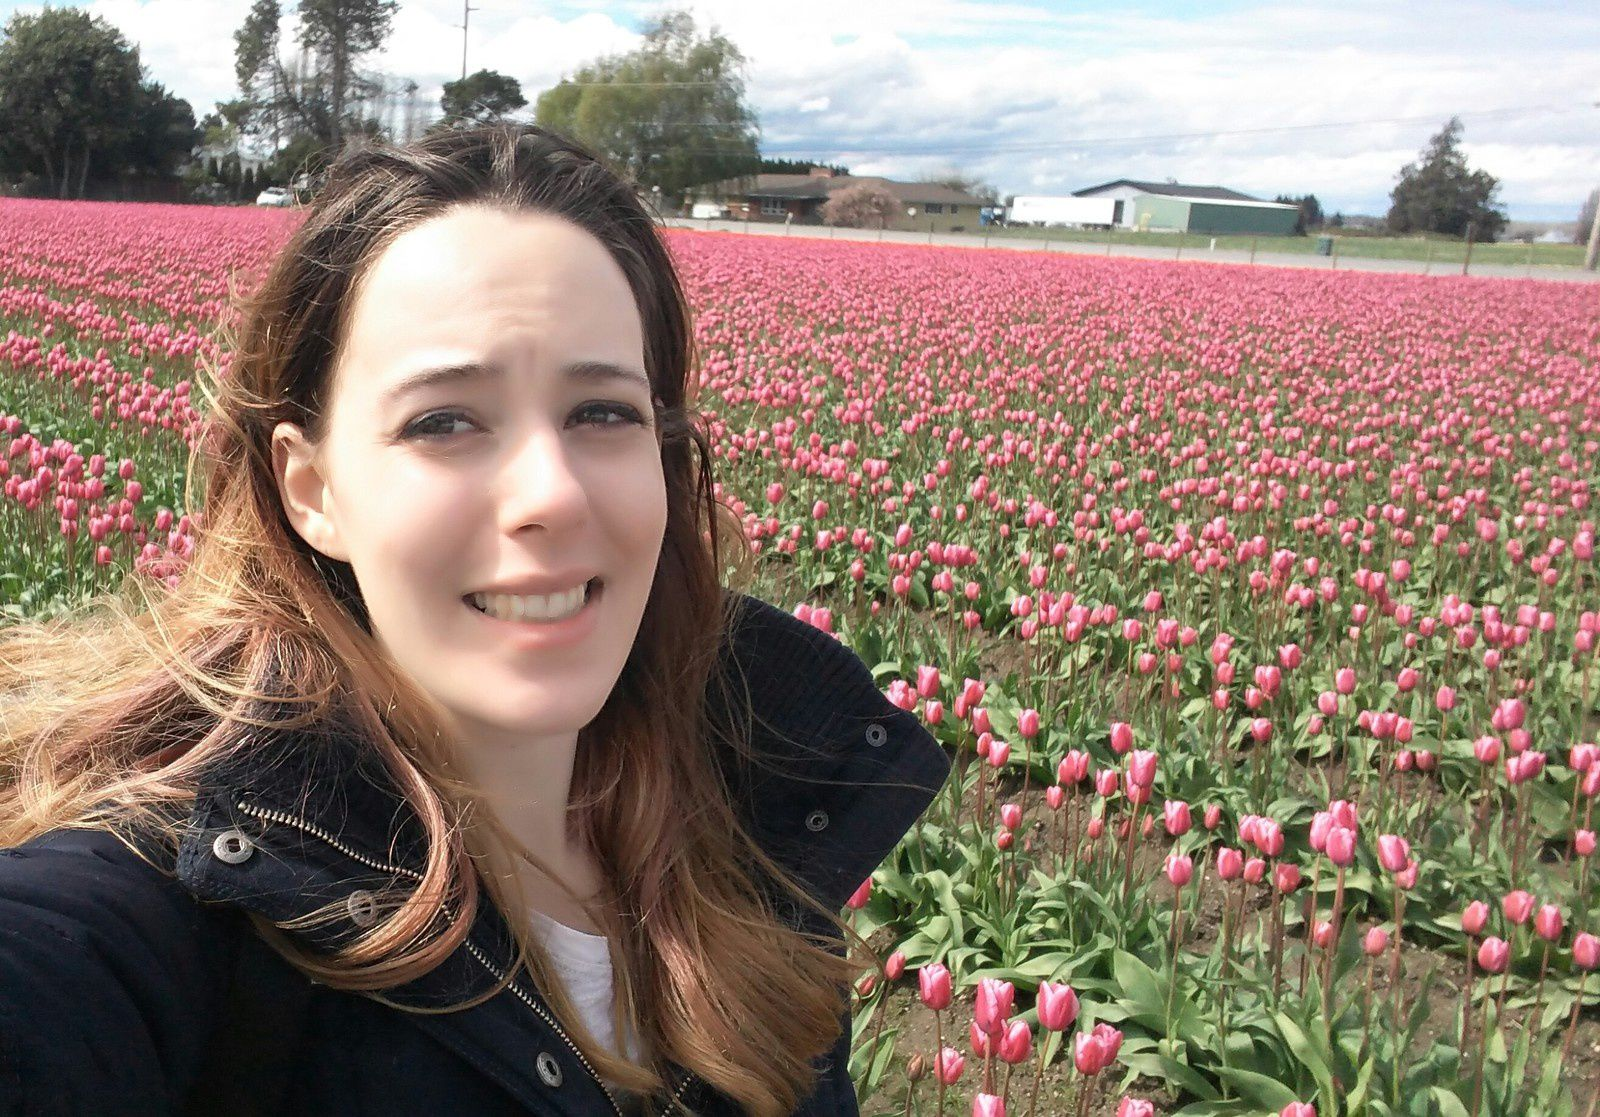 Me, apparently being made to feel very uncomfortable by some tulips. / Moi, apparemment mal à l'aise face des tulipes.